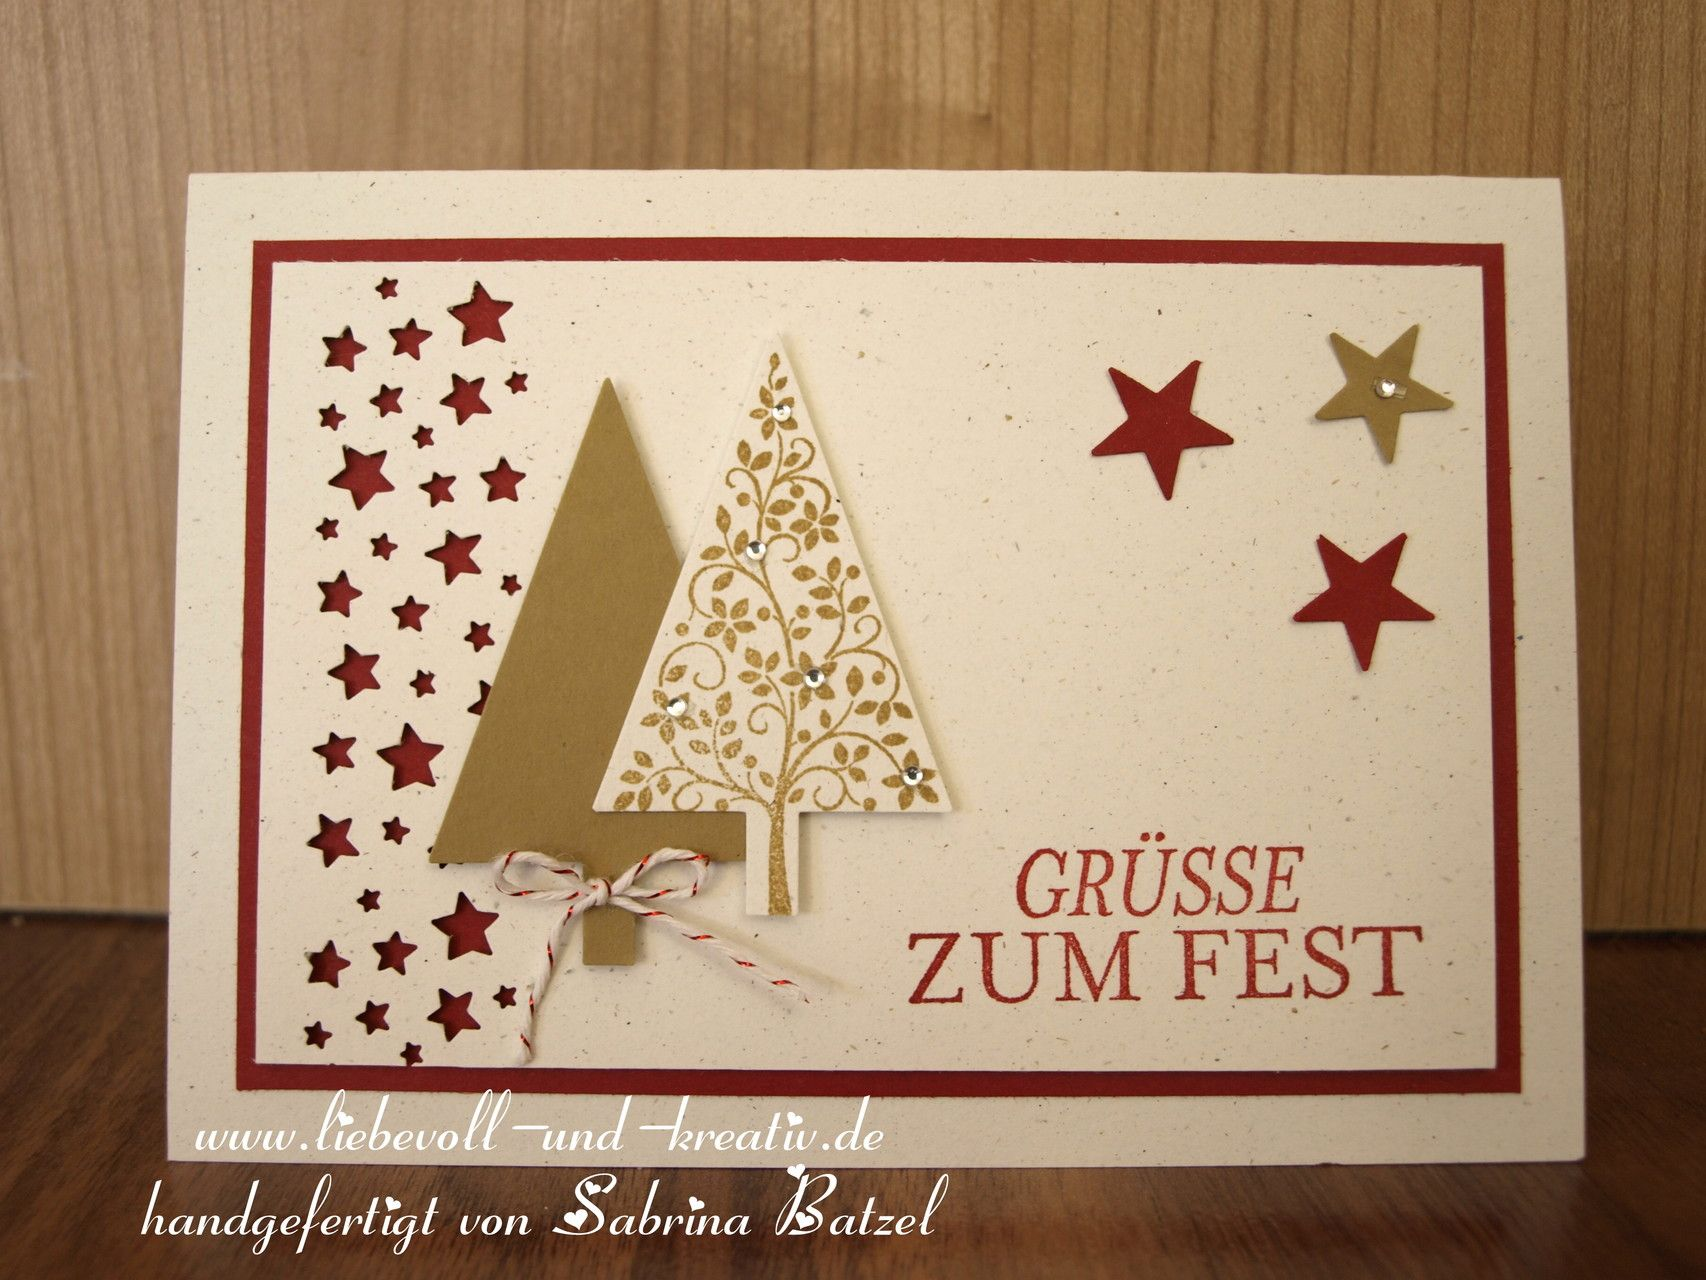 stampin 39 up karte weihnachten christbaum tannenbaum stern sternenkonfetti stern bord re. Black Bedroom Furniture Sets. Home Design Ideas